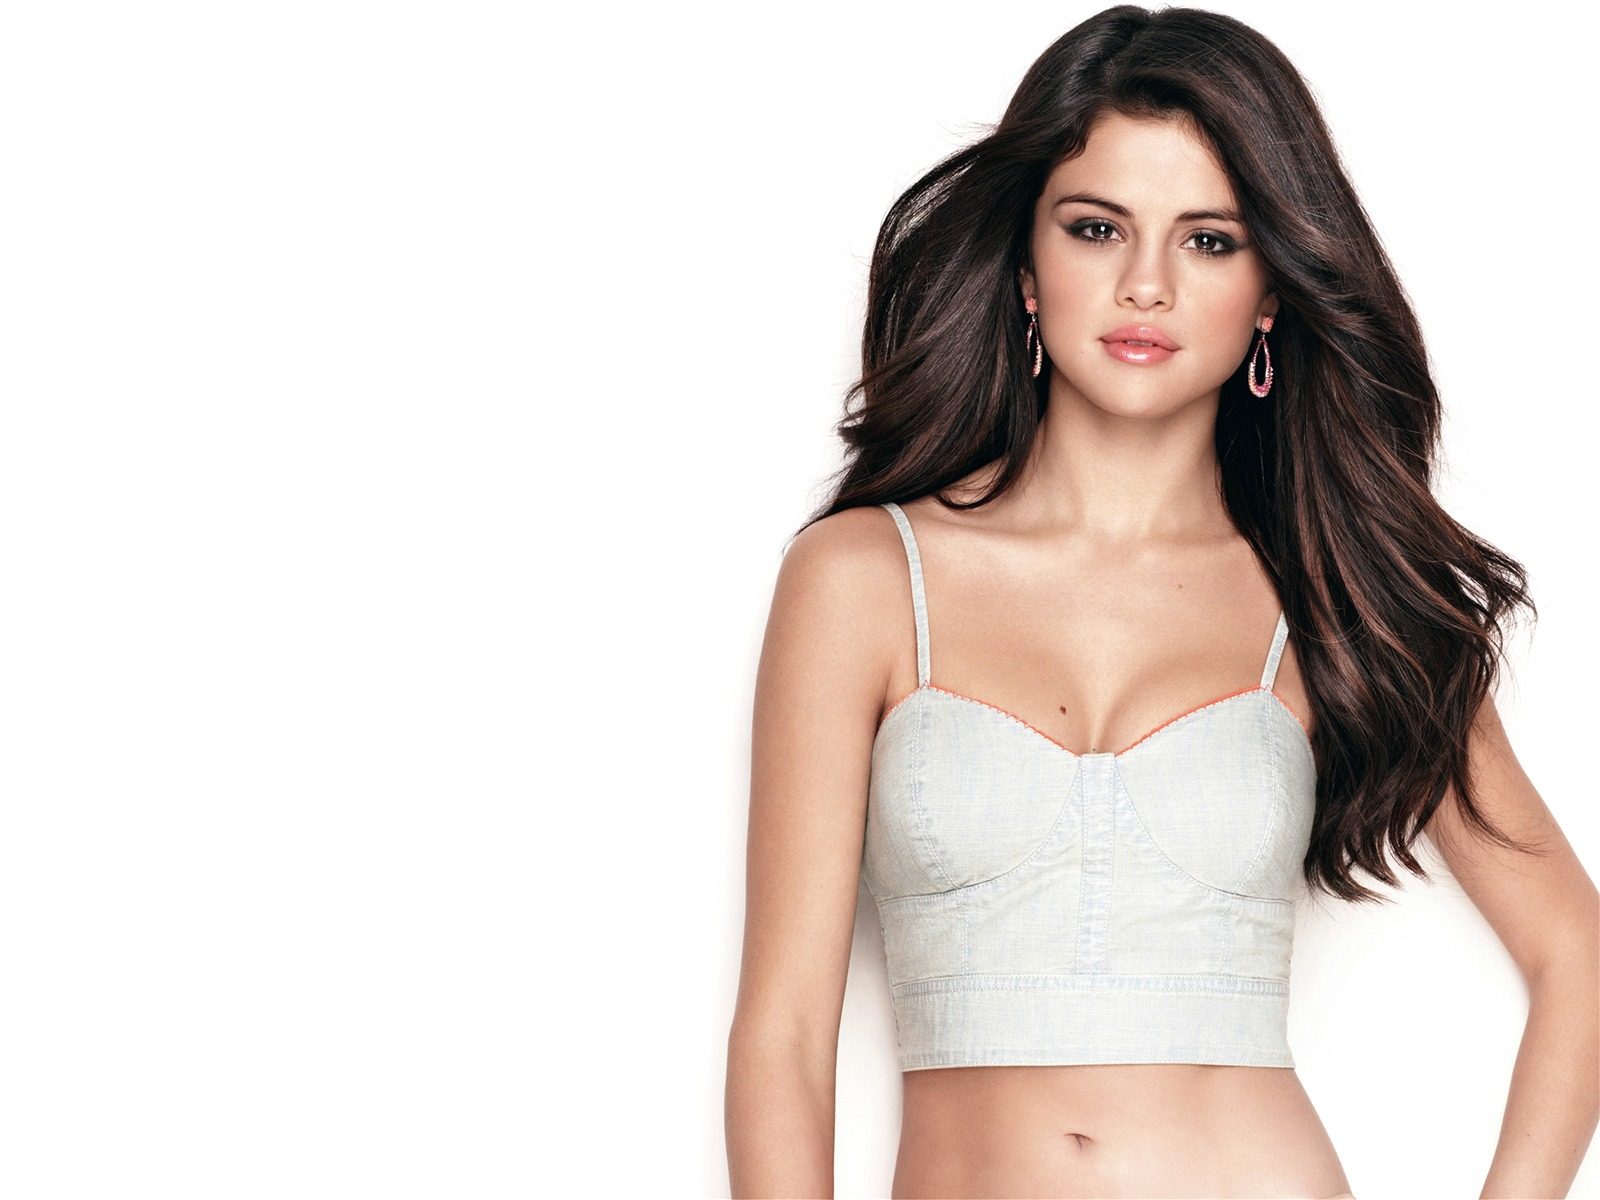 american actess and singer selena gomez Personal life of sexy american singer selena gomez wizards of waverly place actress selena gomez personal like is not many melodies as her songs, her parents divorced when she was five years old, and she stayed with her mother gomez has two siblings, her sister, gracie elliott tiffi, was born on 12 june 2013 in amanda and her second husband.